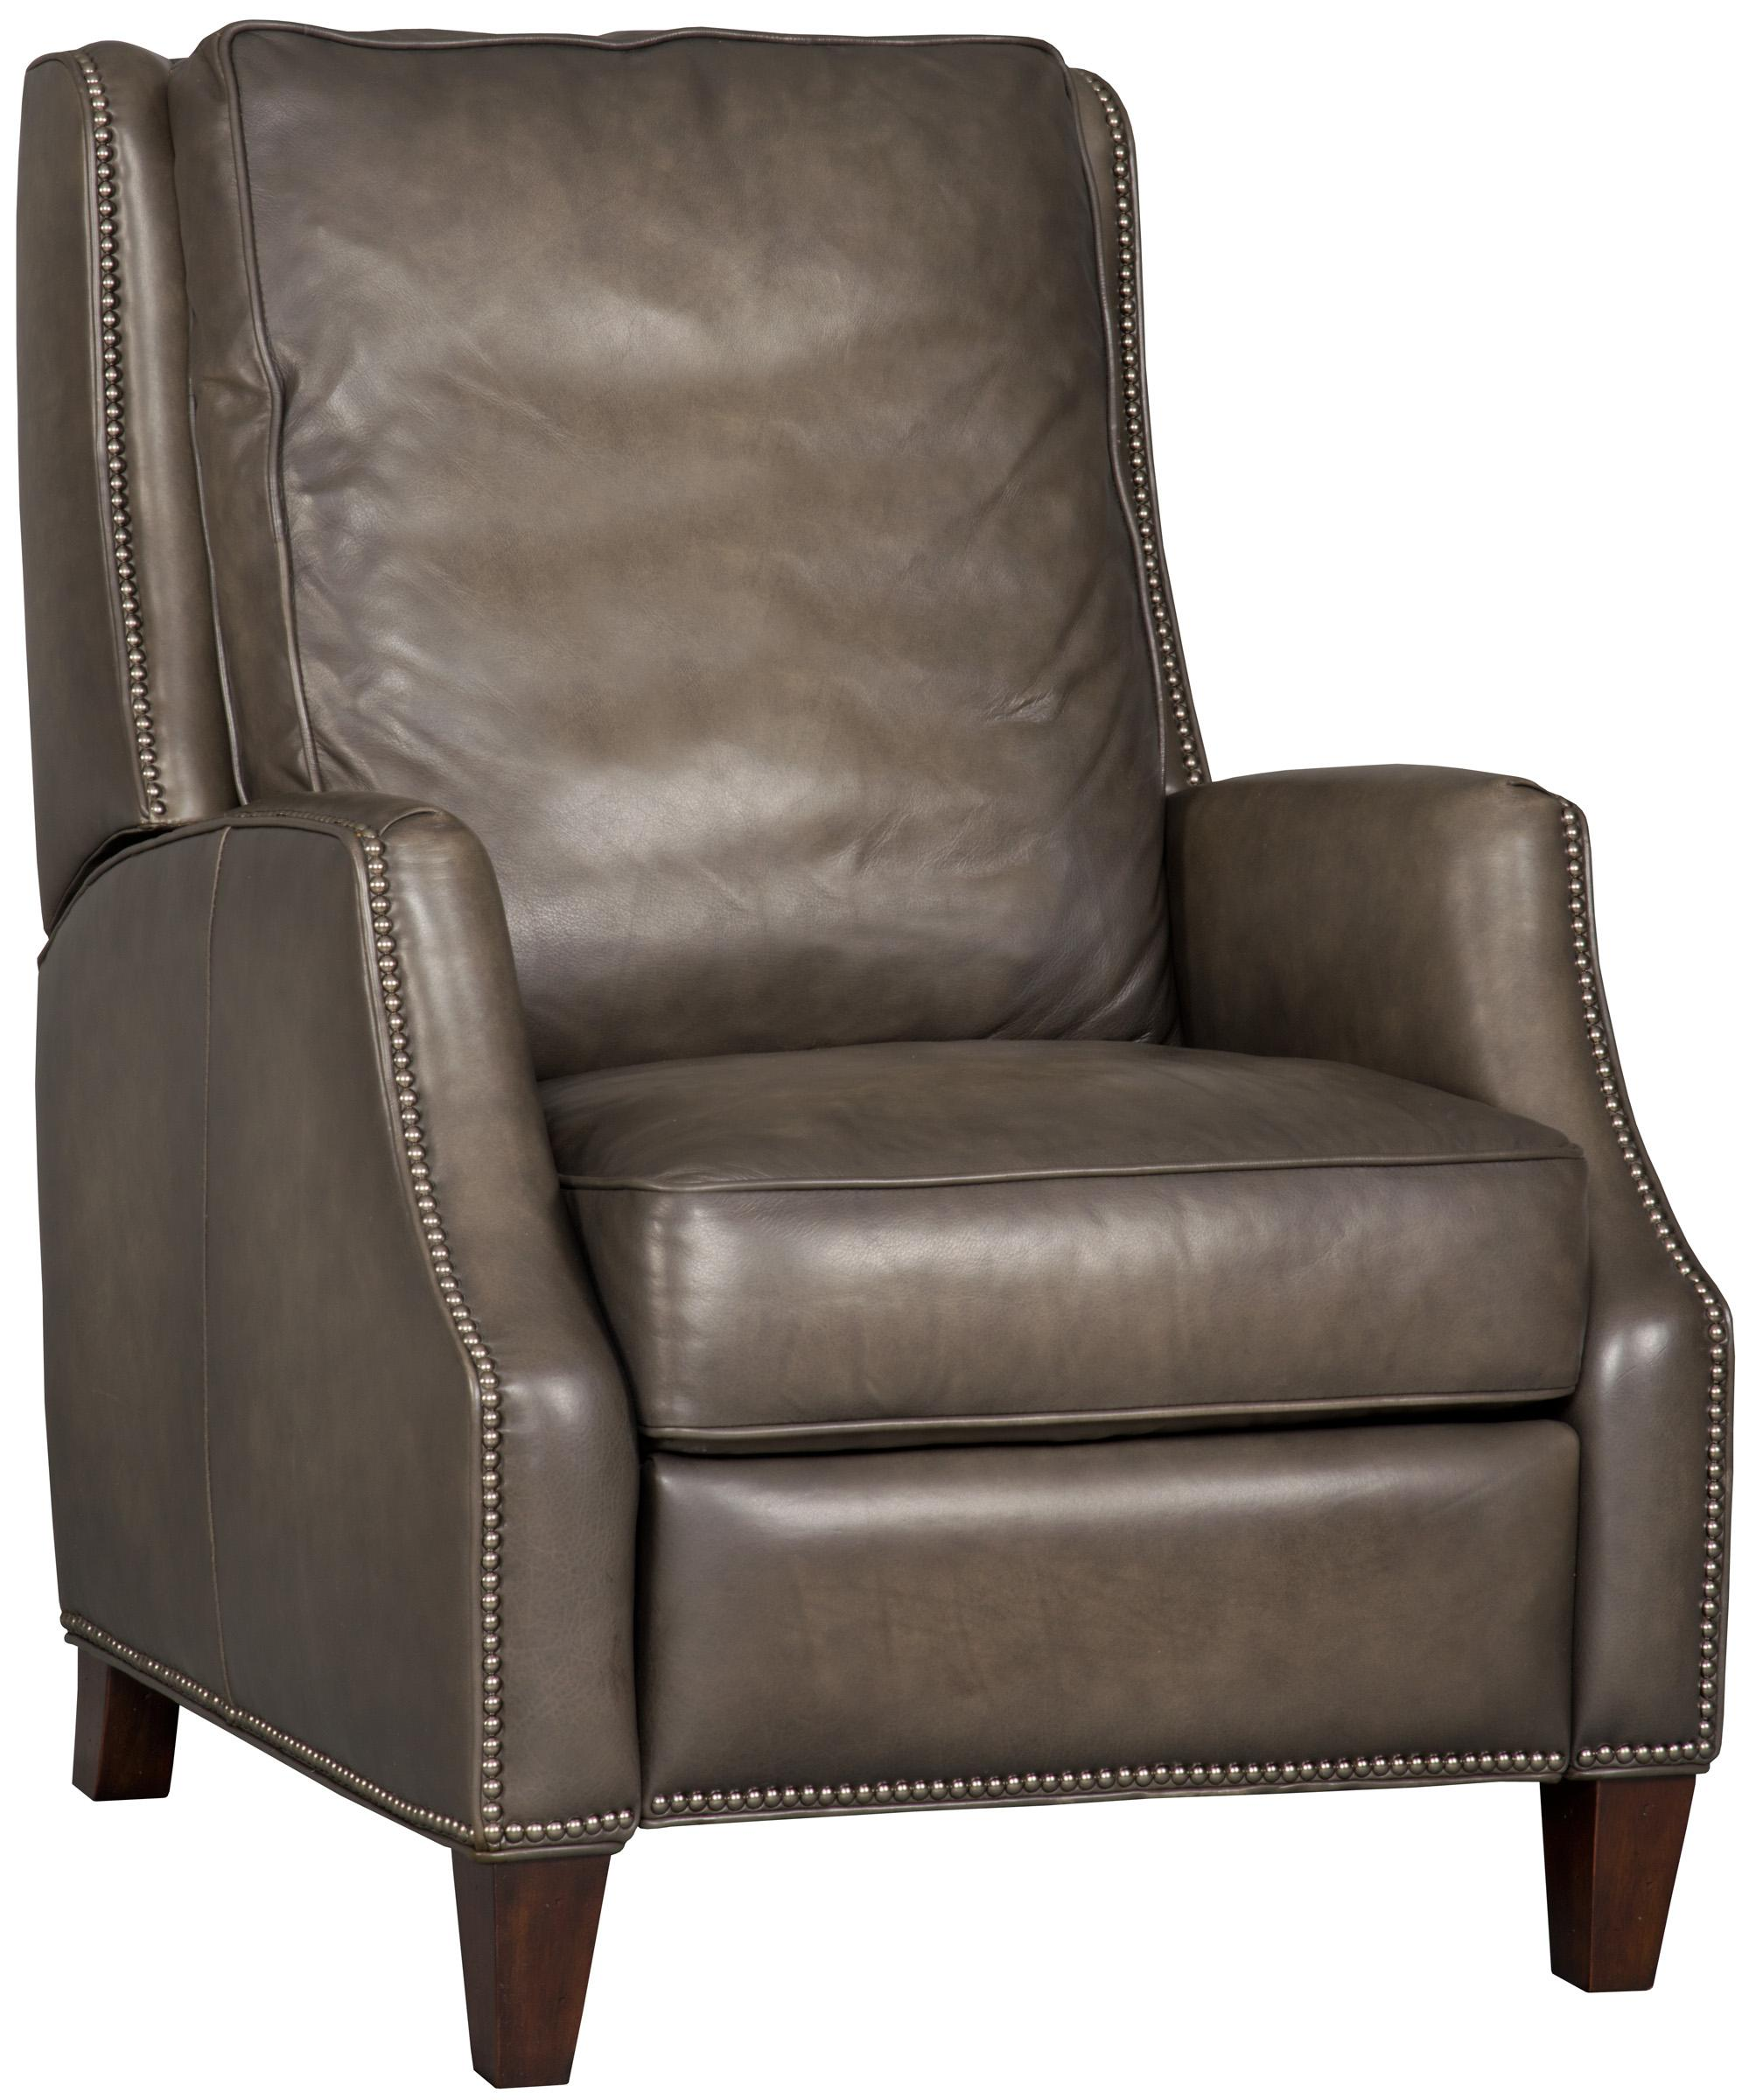 Hooker Furniture Reclining Chairs Sarzana Recliner - Item Number: RC260-095